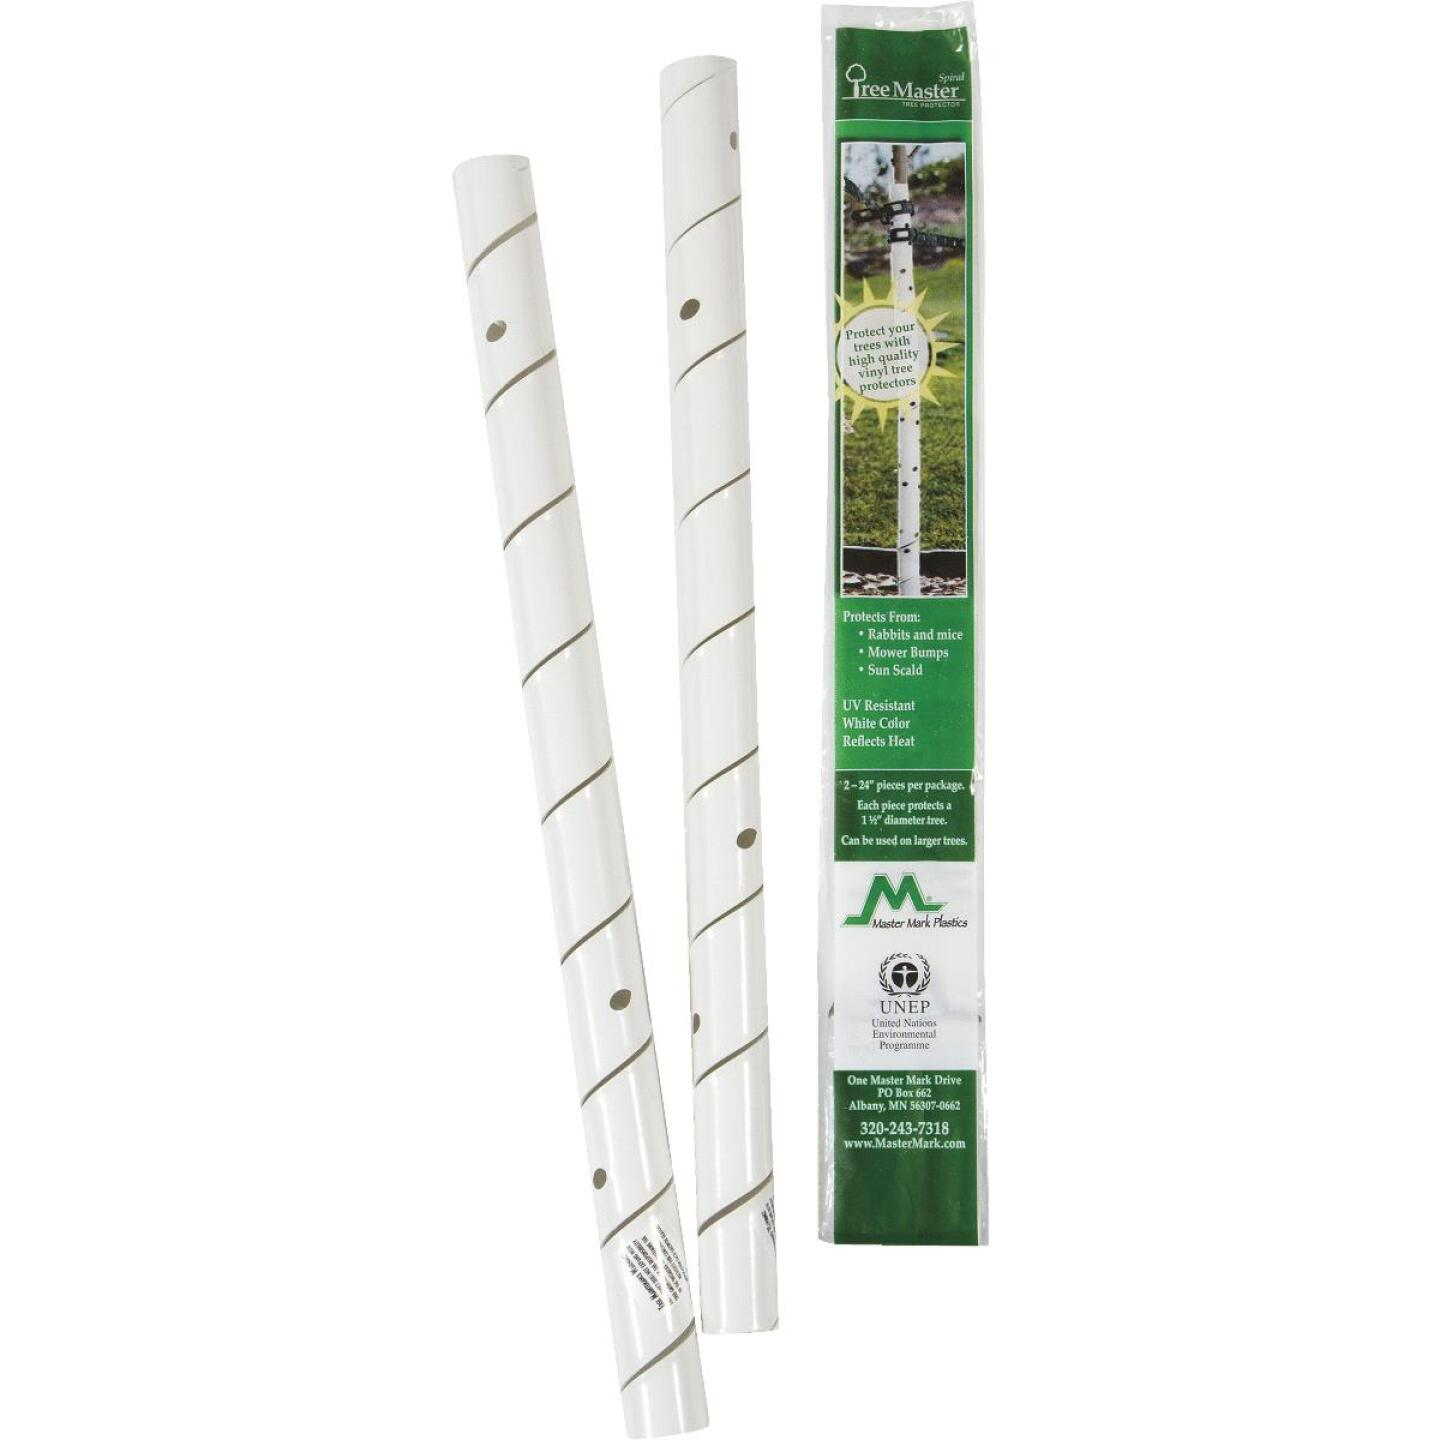 Master Mark Tree Master 4 In. W. x 24 In. L. Tree Guard Image 1